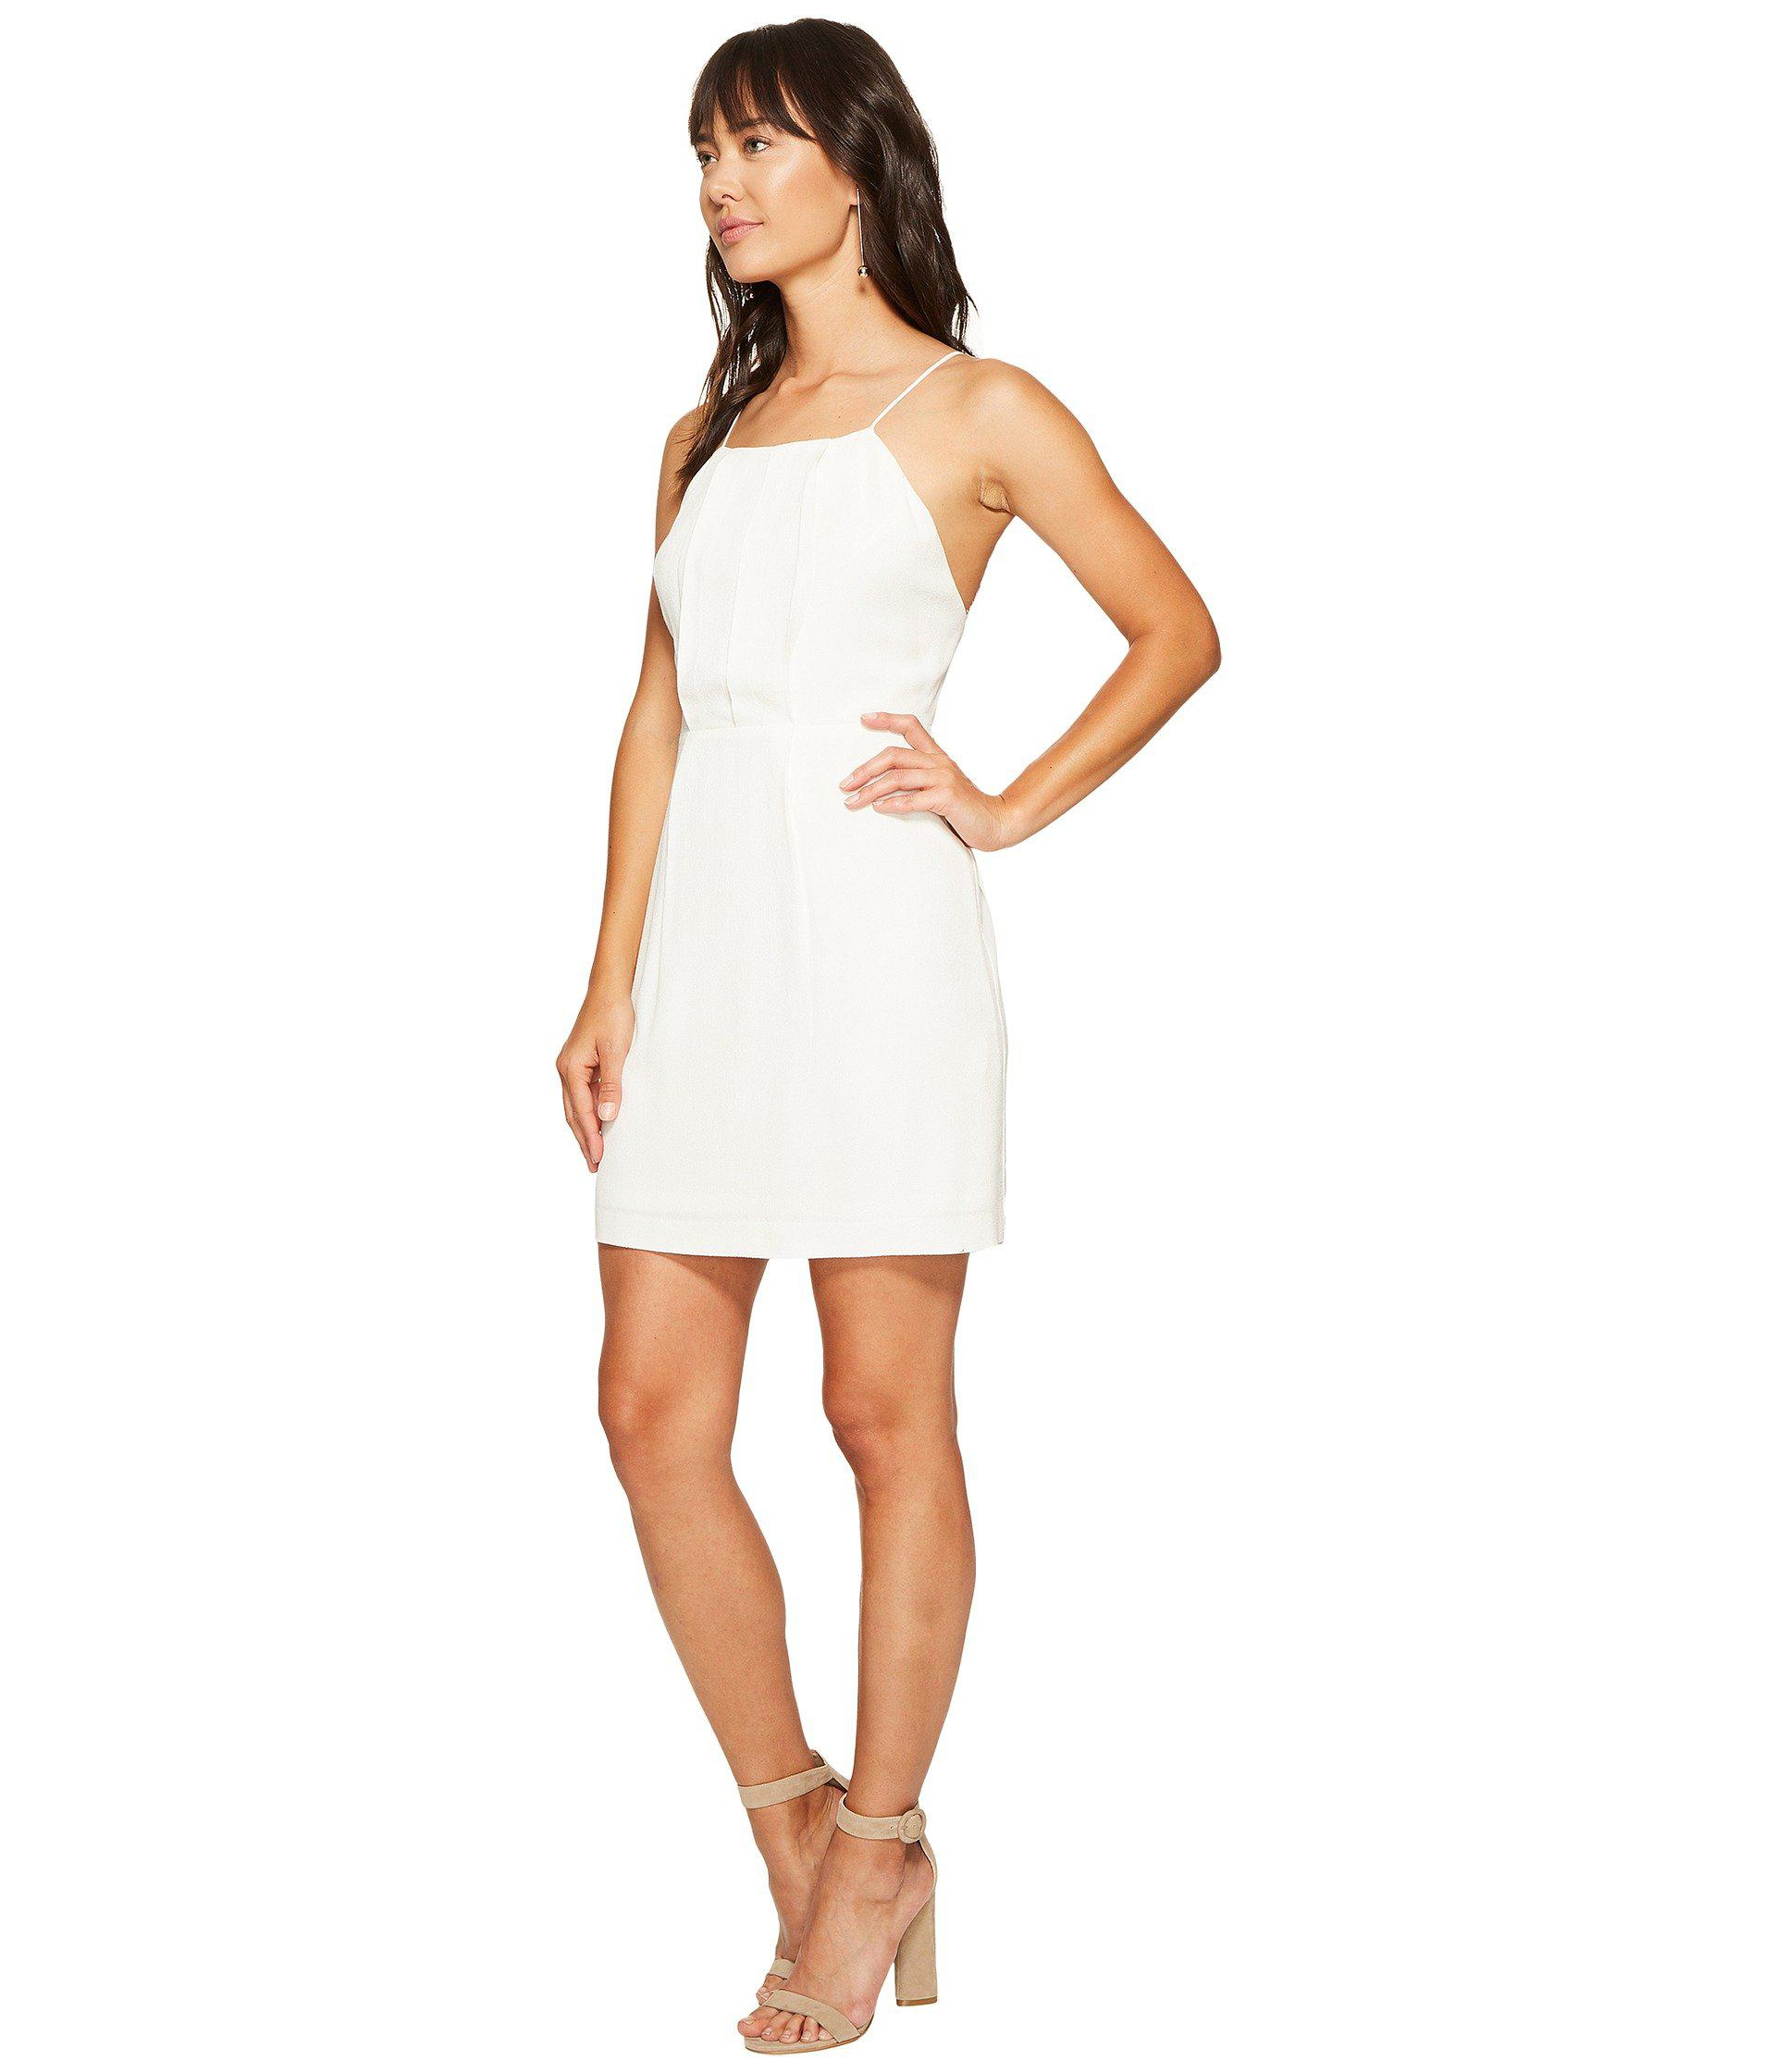 e689a13f Kensie Texture Crepe Dress With Lace Back Ks6k7993 in White - Lyst